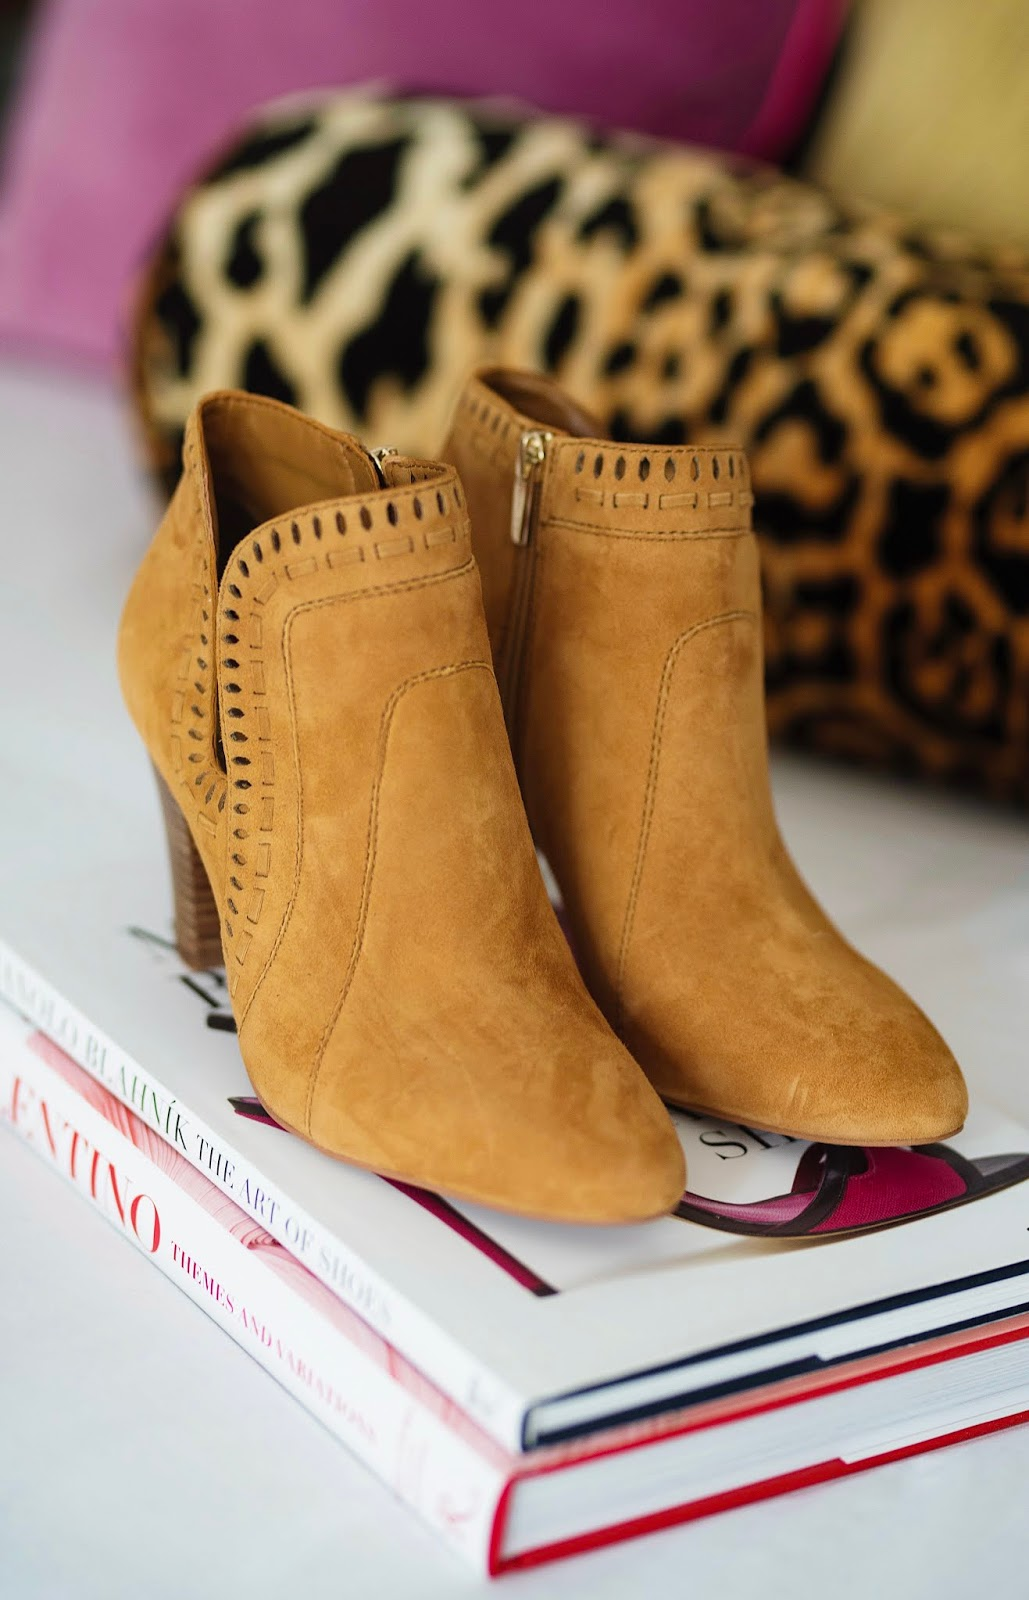 d1d4f879ad6 Nordstrom Anniversary Sale Vince Camuto Reeista Booties - Something  Delightful Blog